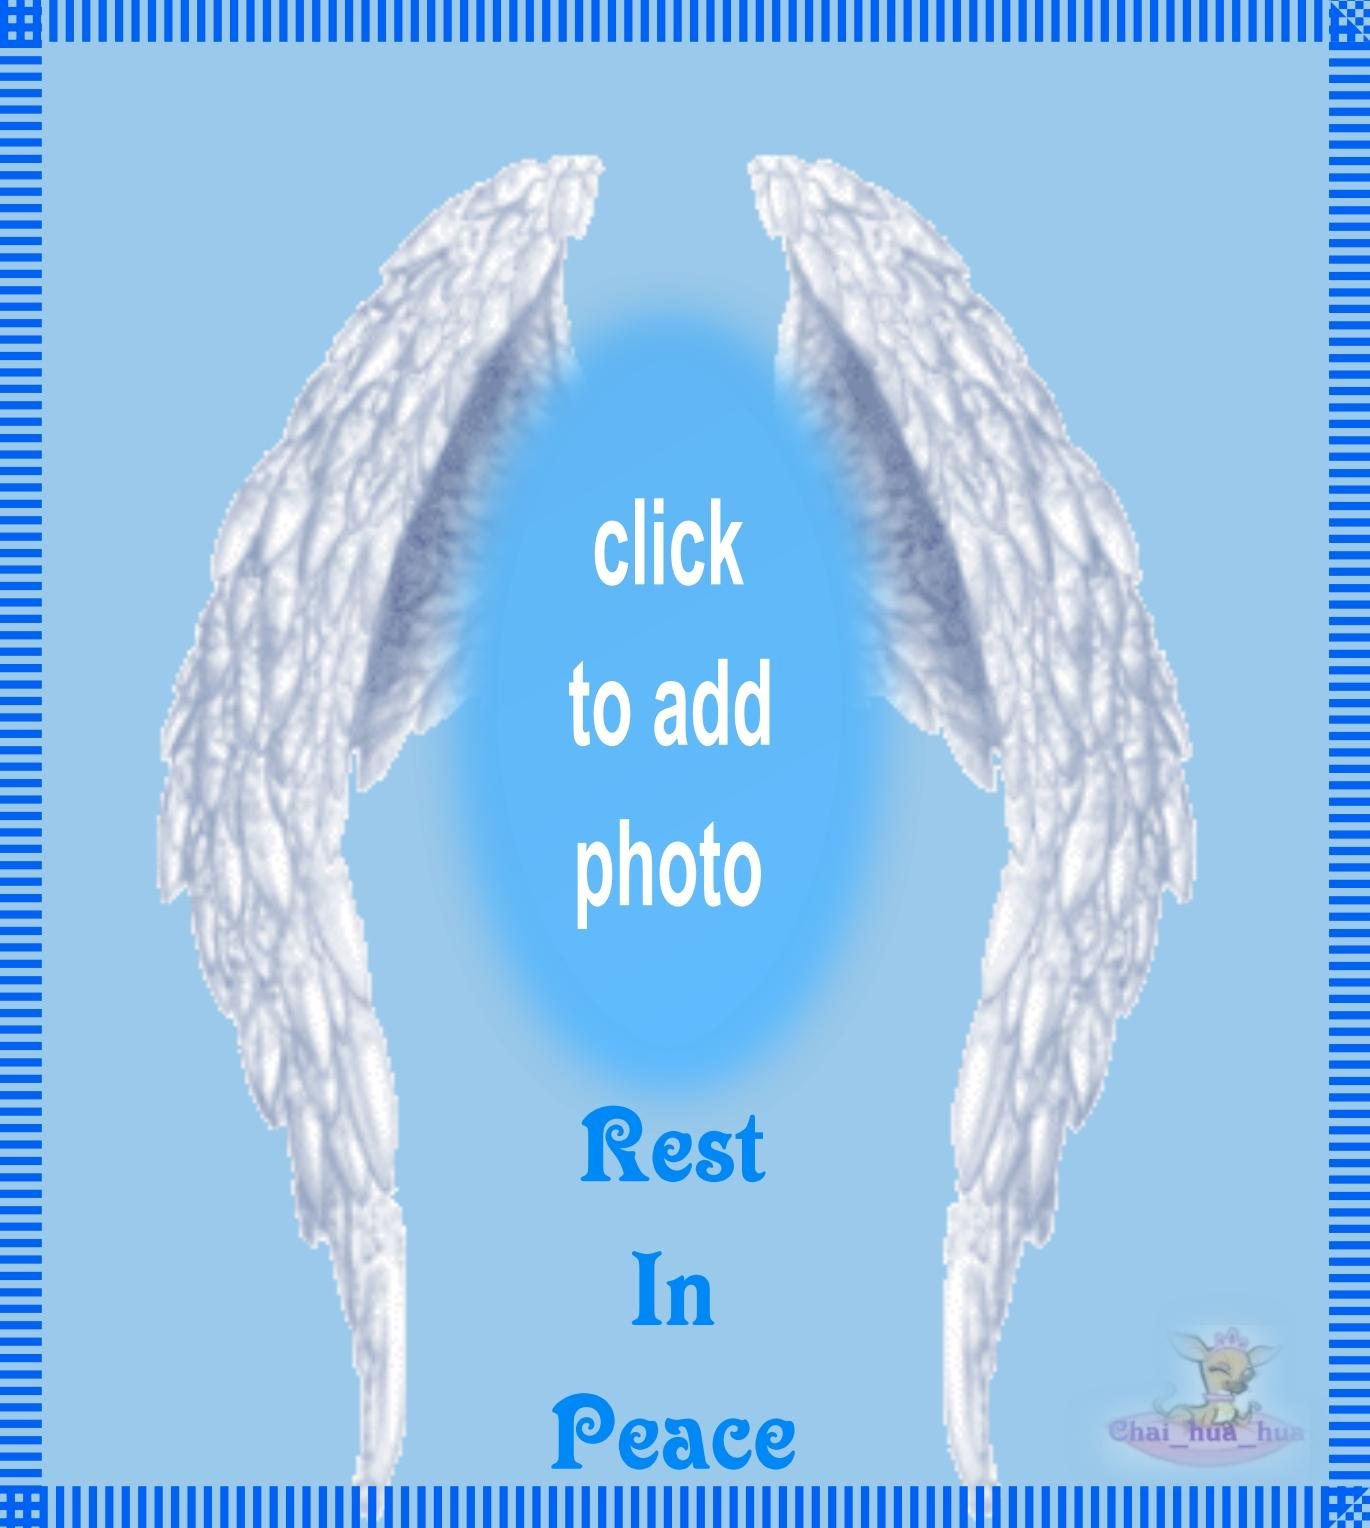 Rest in peace frames for pictures frame design reviews rest in peace imikimi com source frames 2008 r i p animated angel wings r i p animated angel wings jeuxipadfo Gallery